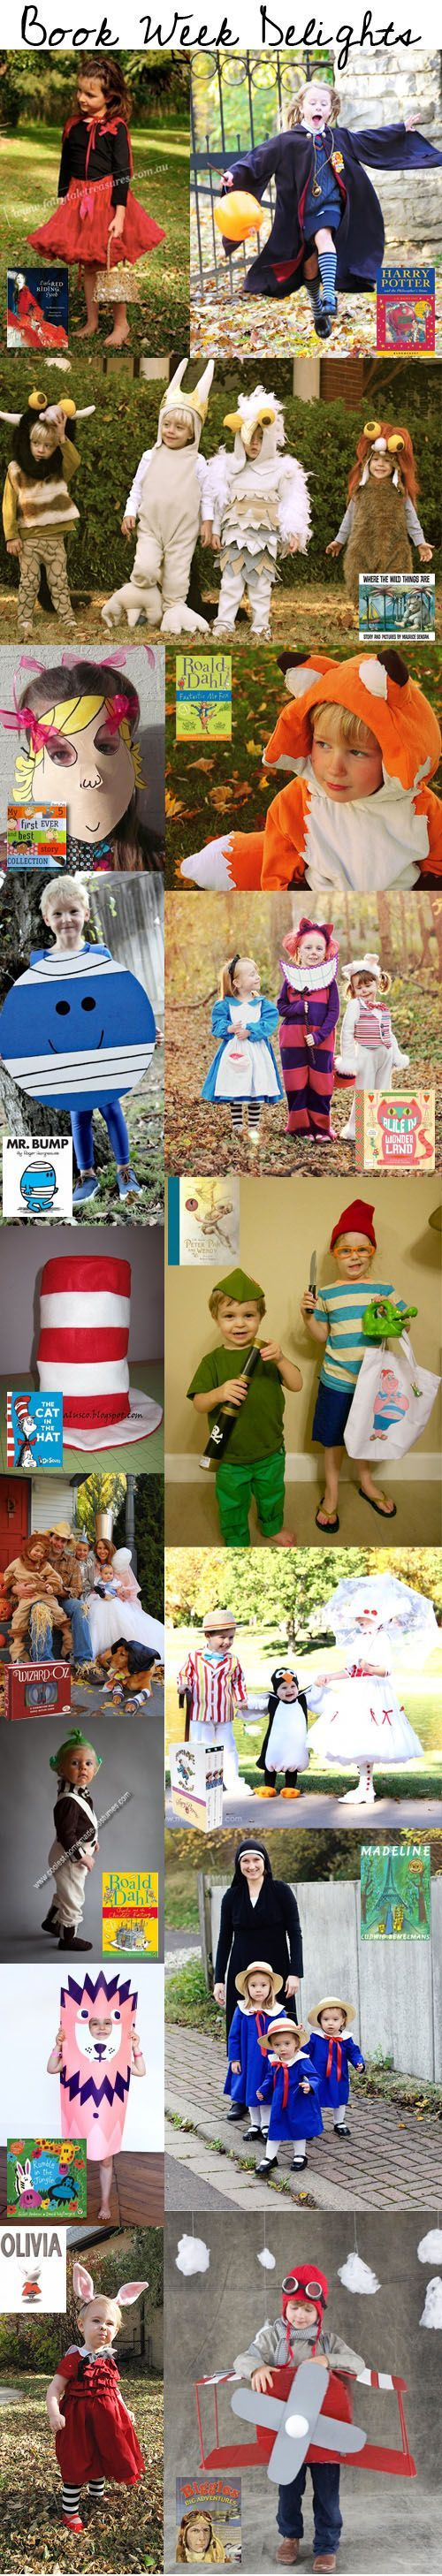 Calendar Costume Ideas : Best images about awesome book week costume ideas on